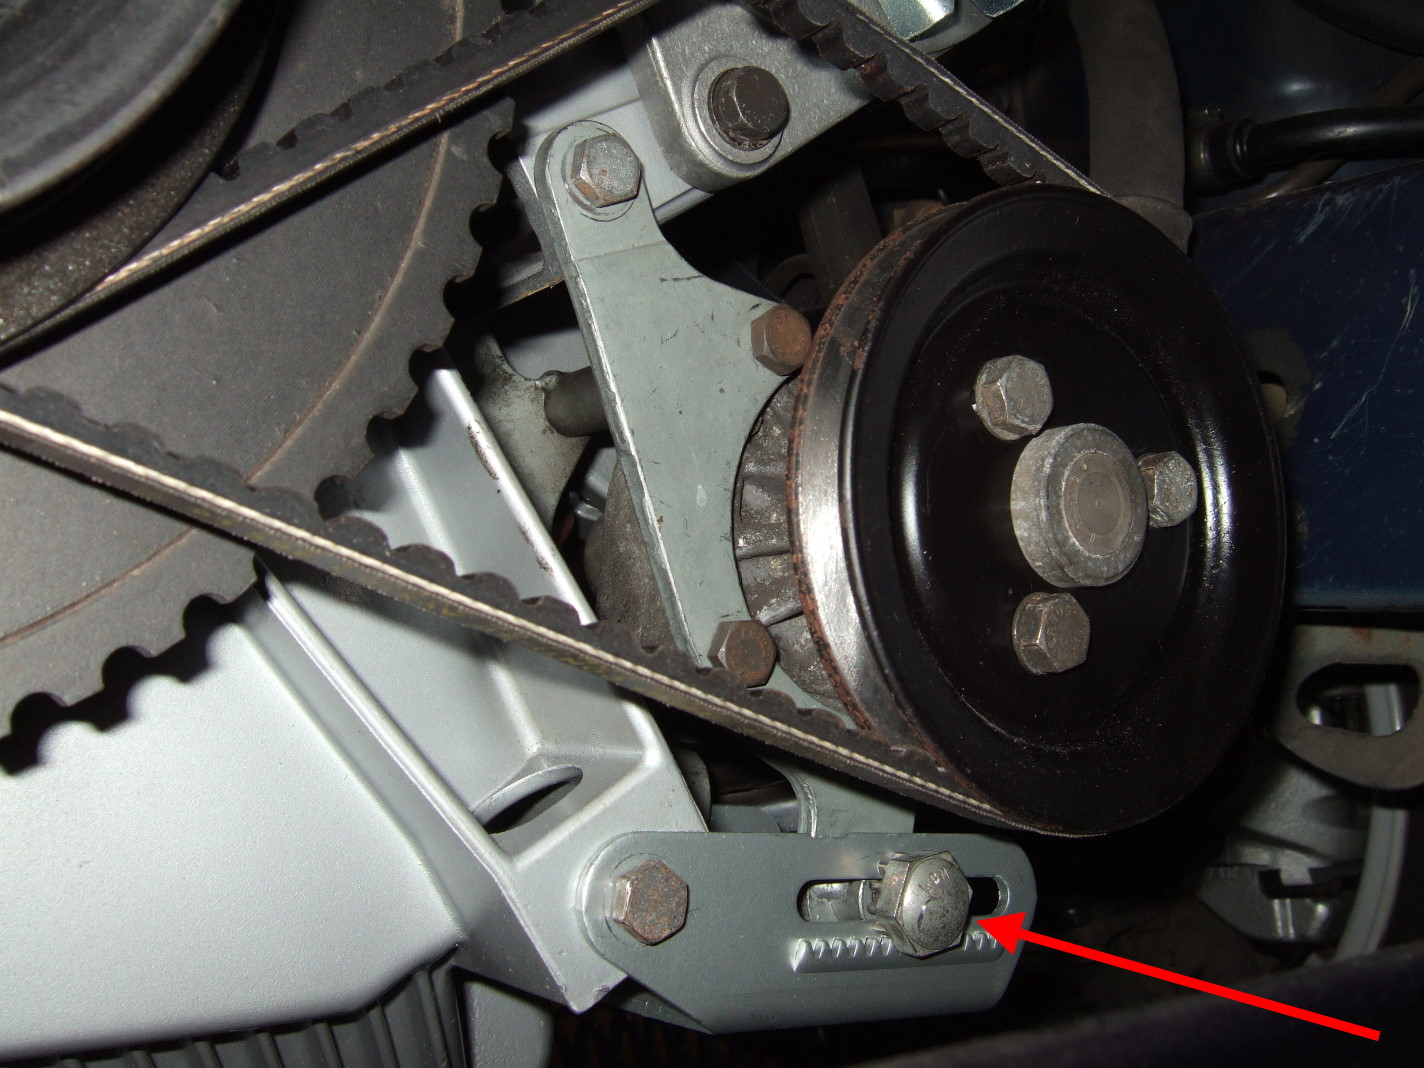 Removal Of Ac Belt Requires The Power Steering Pump Belt To Be Removed